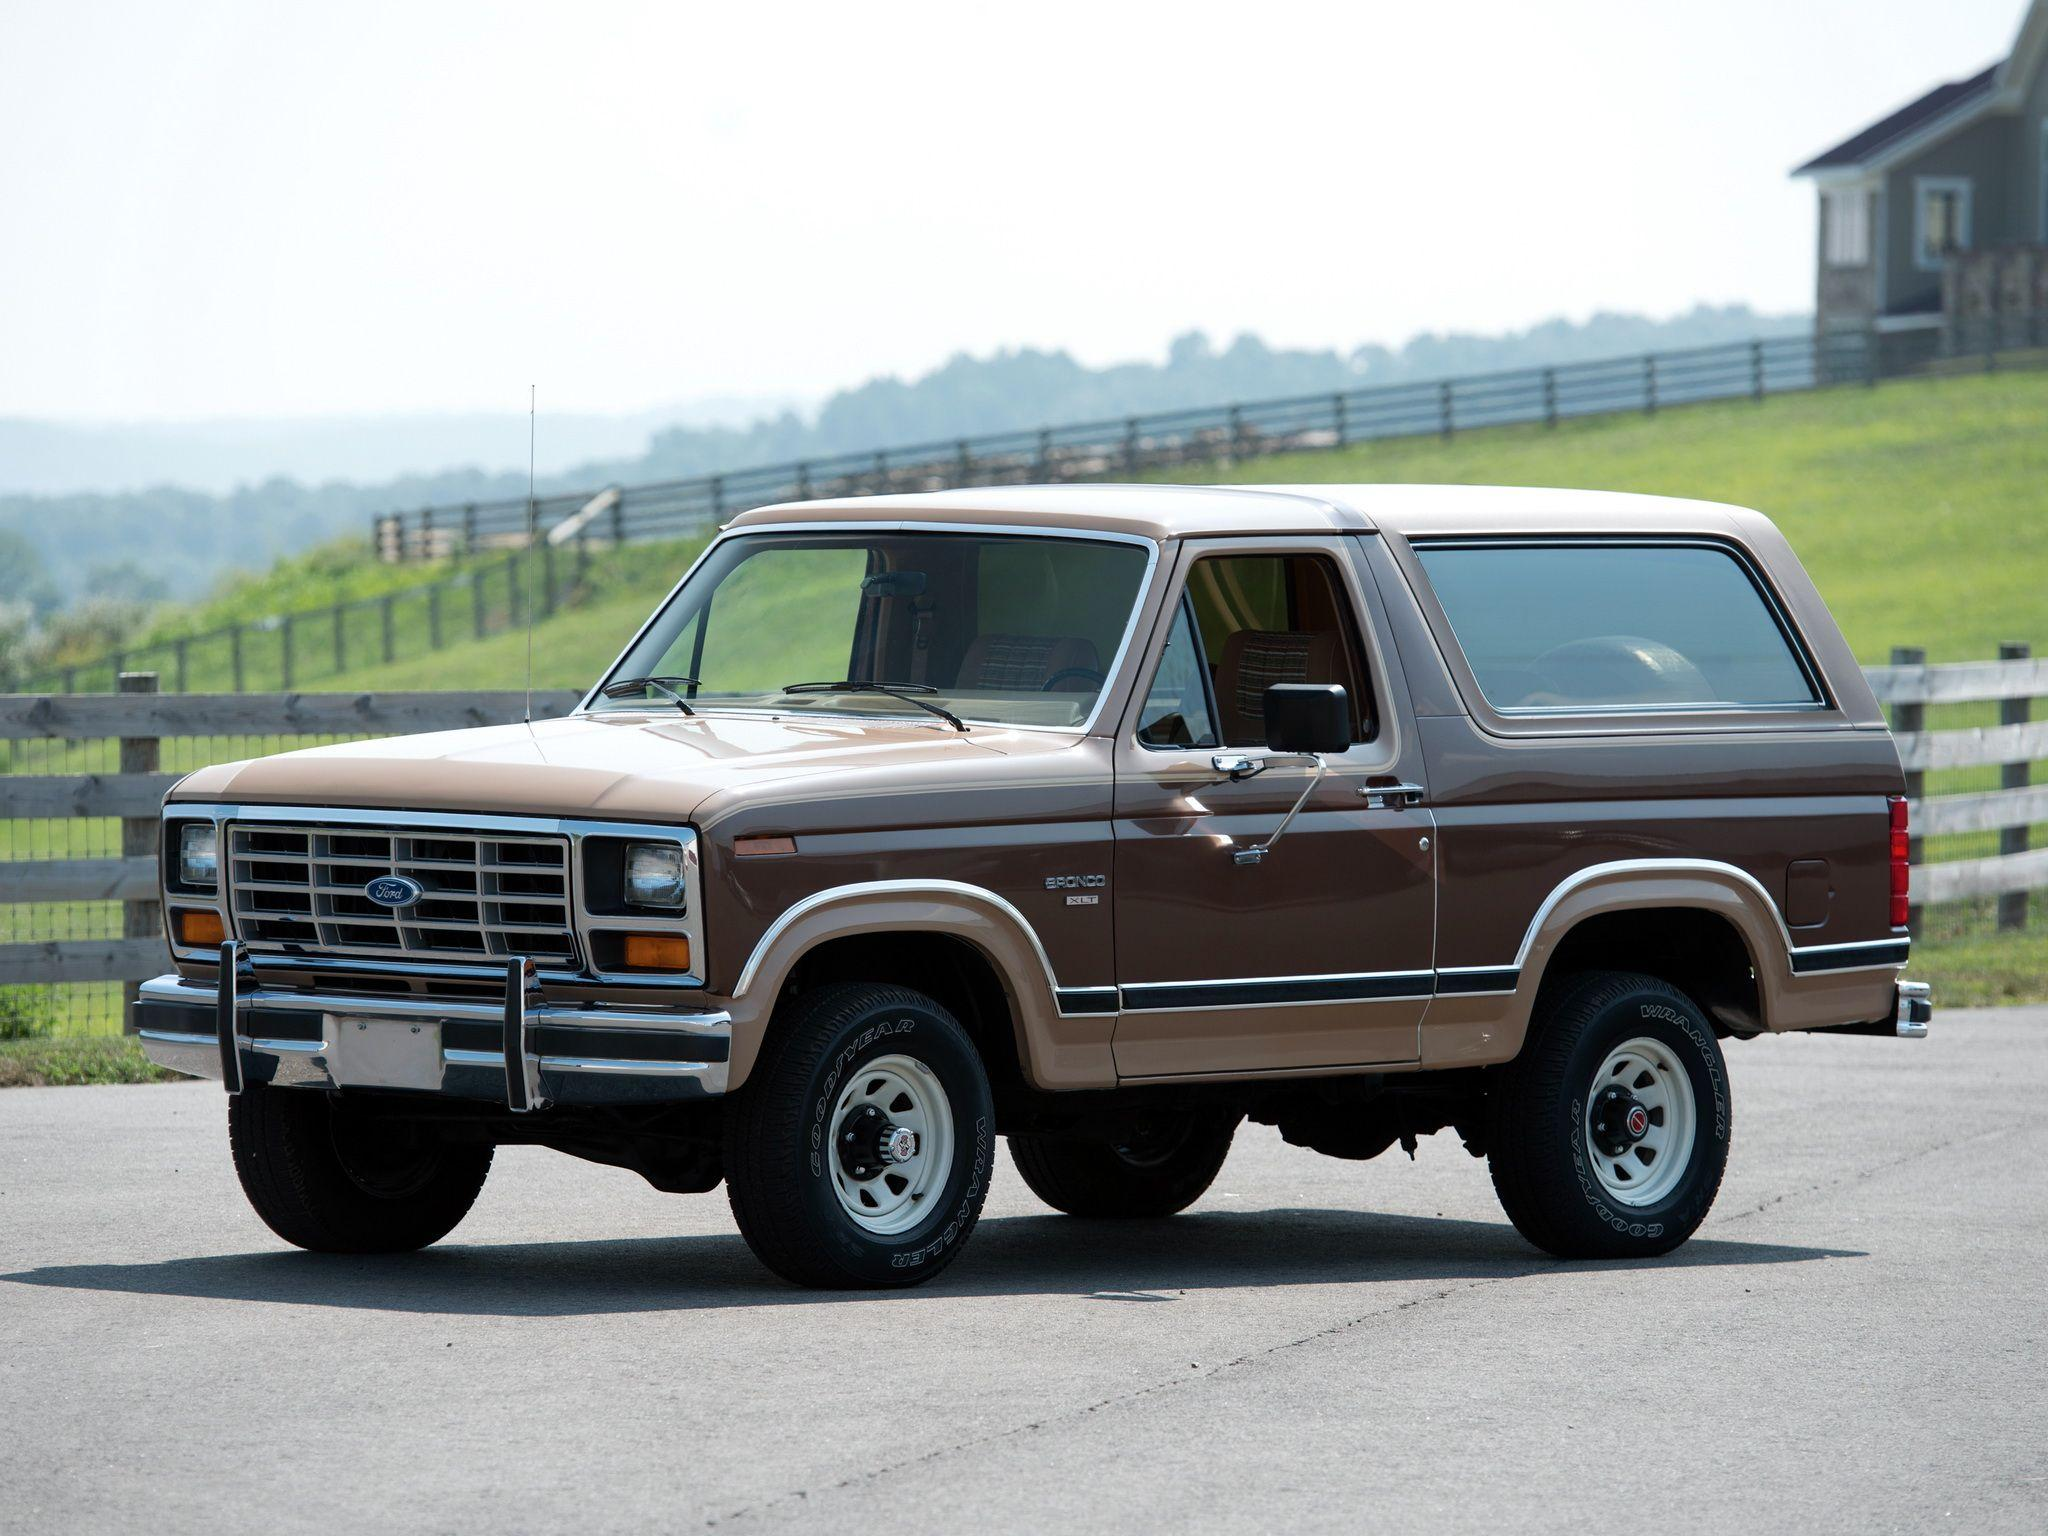 ford Bronco Wallpapers and Background Stmed Pictures – All Ford Auto ...